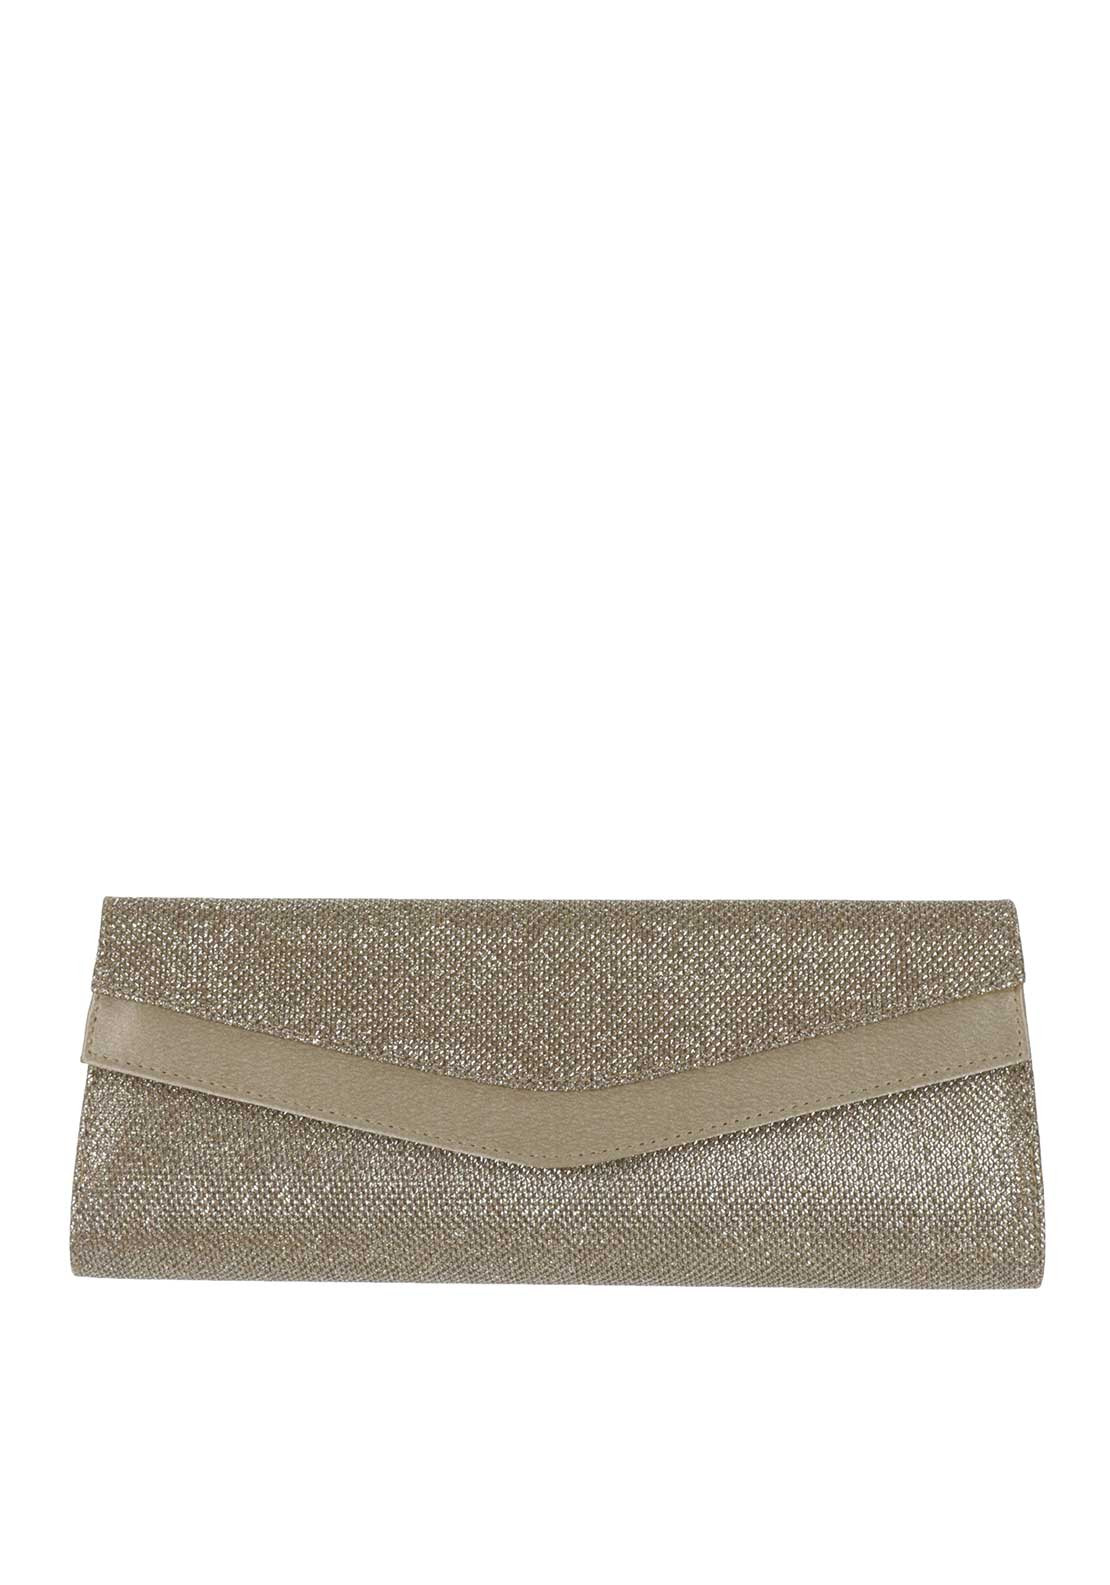 Ana Roman Shimmer Envelope Clutch Bag, Gold